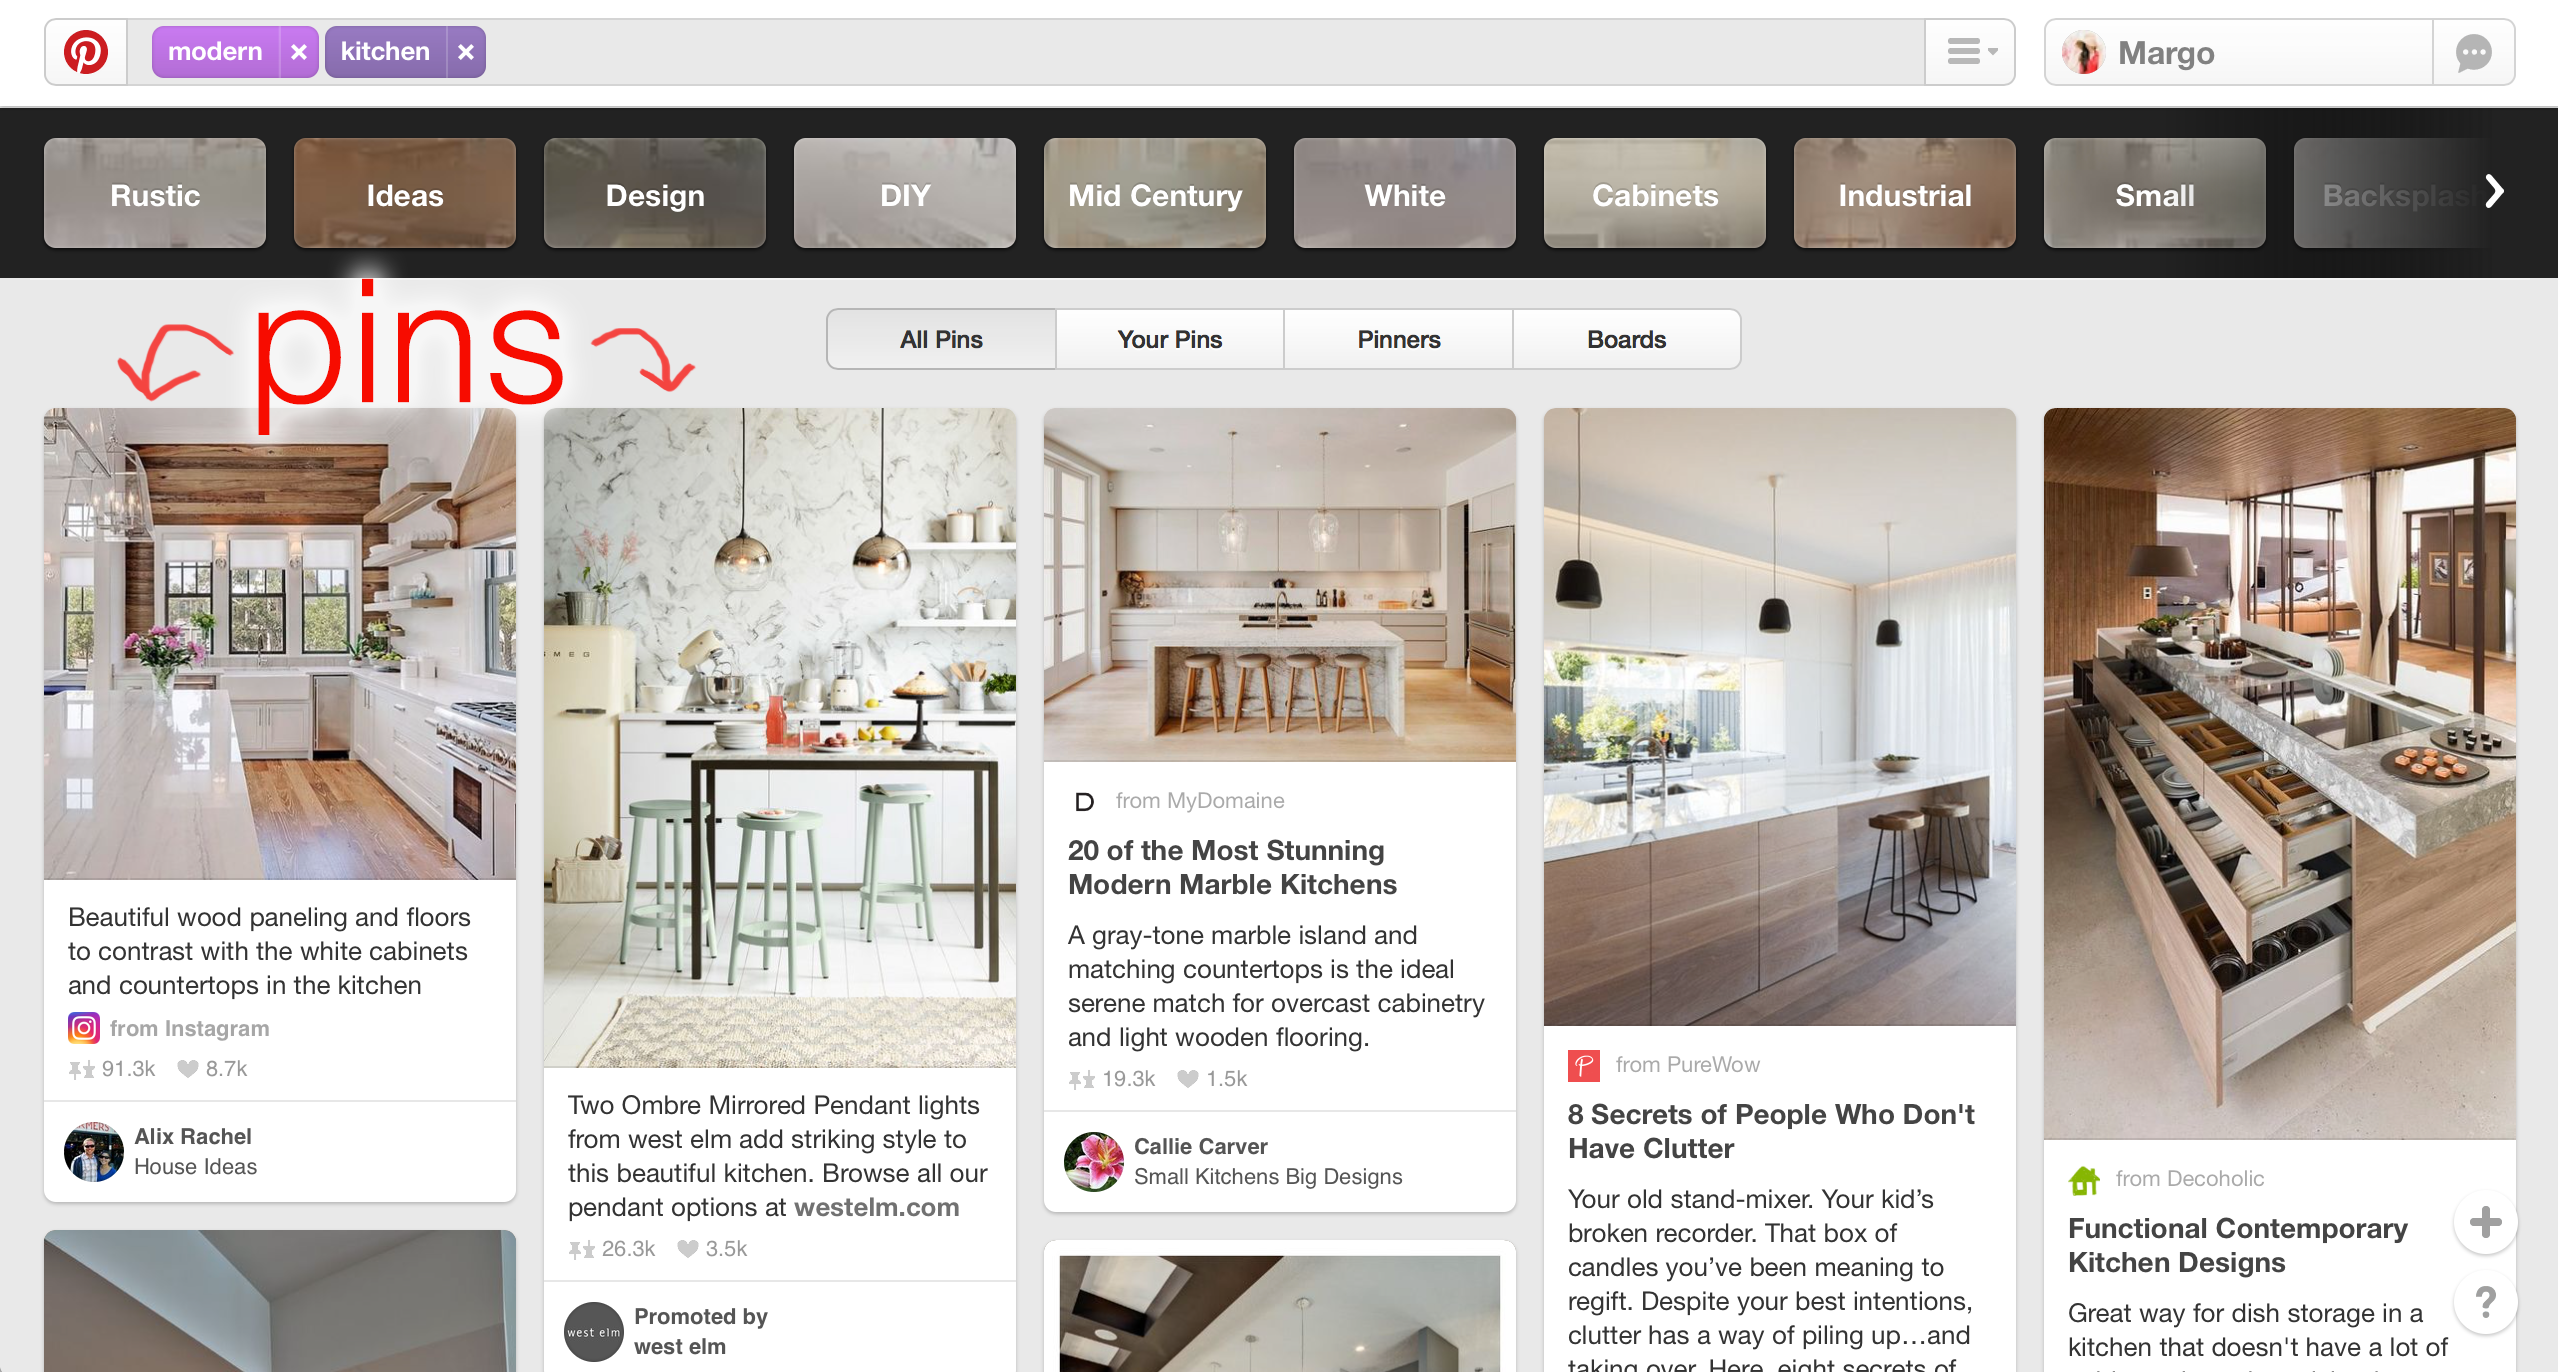 one of our real estate marketing tips for pinterest is to use relevant pins for pin boards